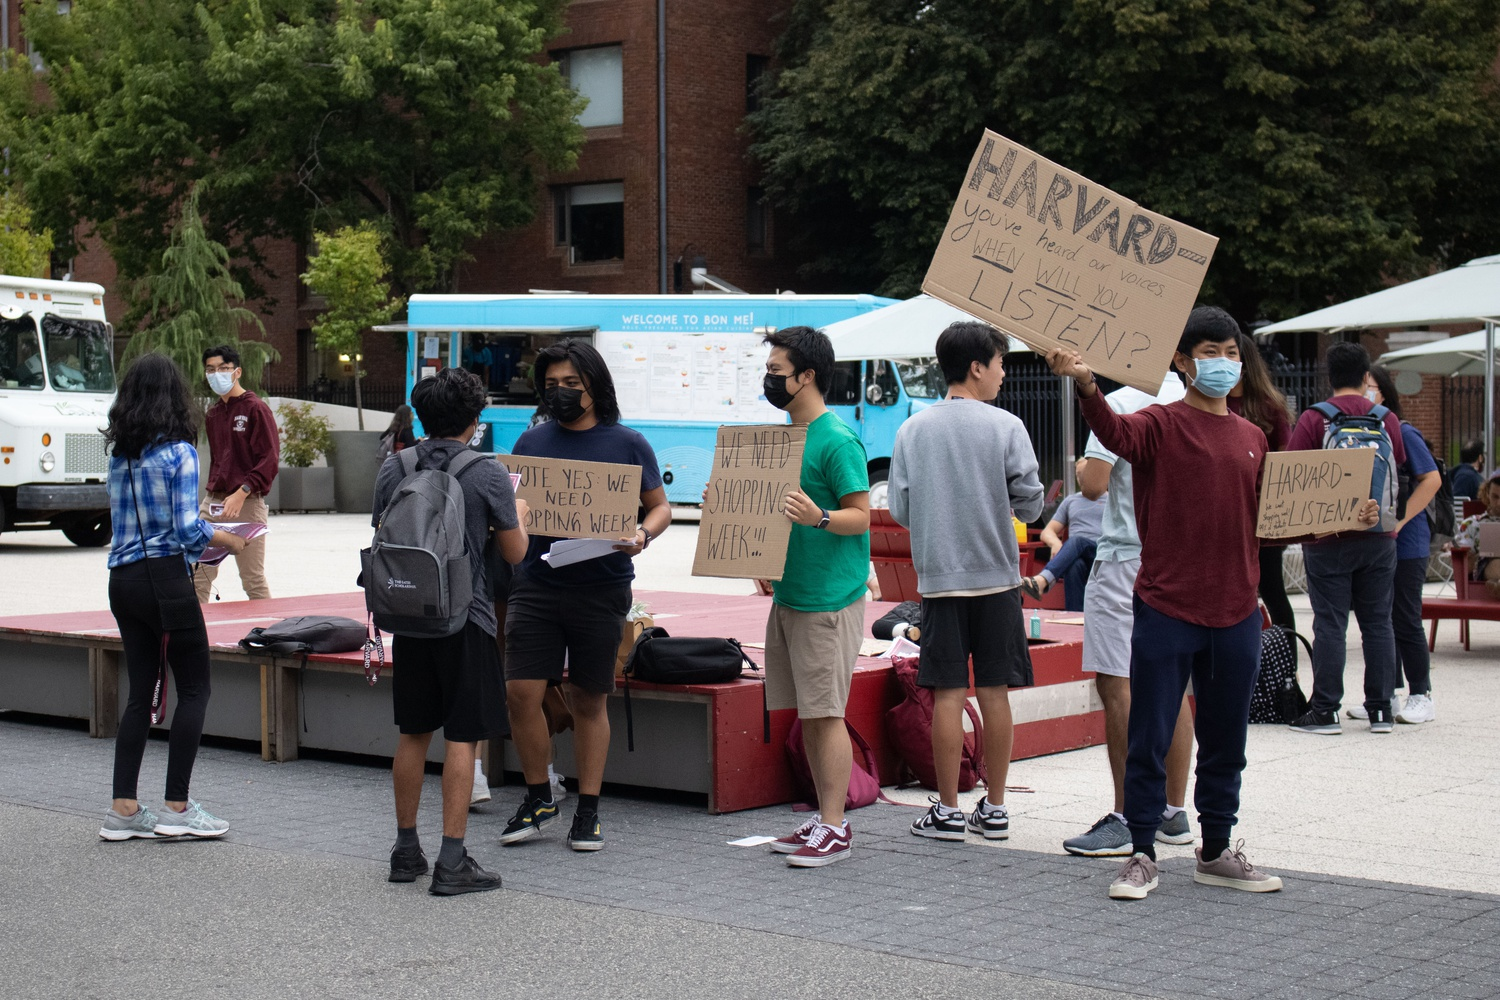 Undergraduates rallied in support of shopping week in Science Center Plaza Tuesday afternoon.